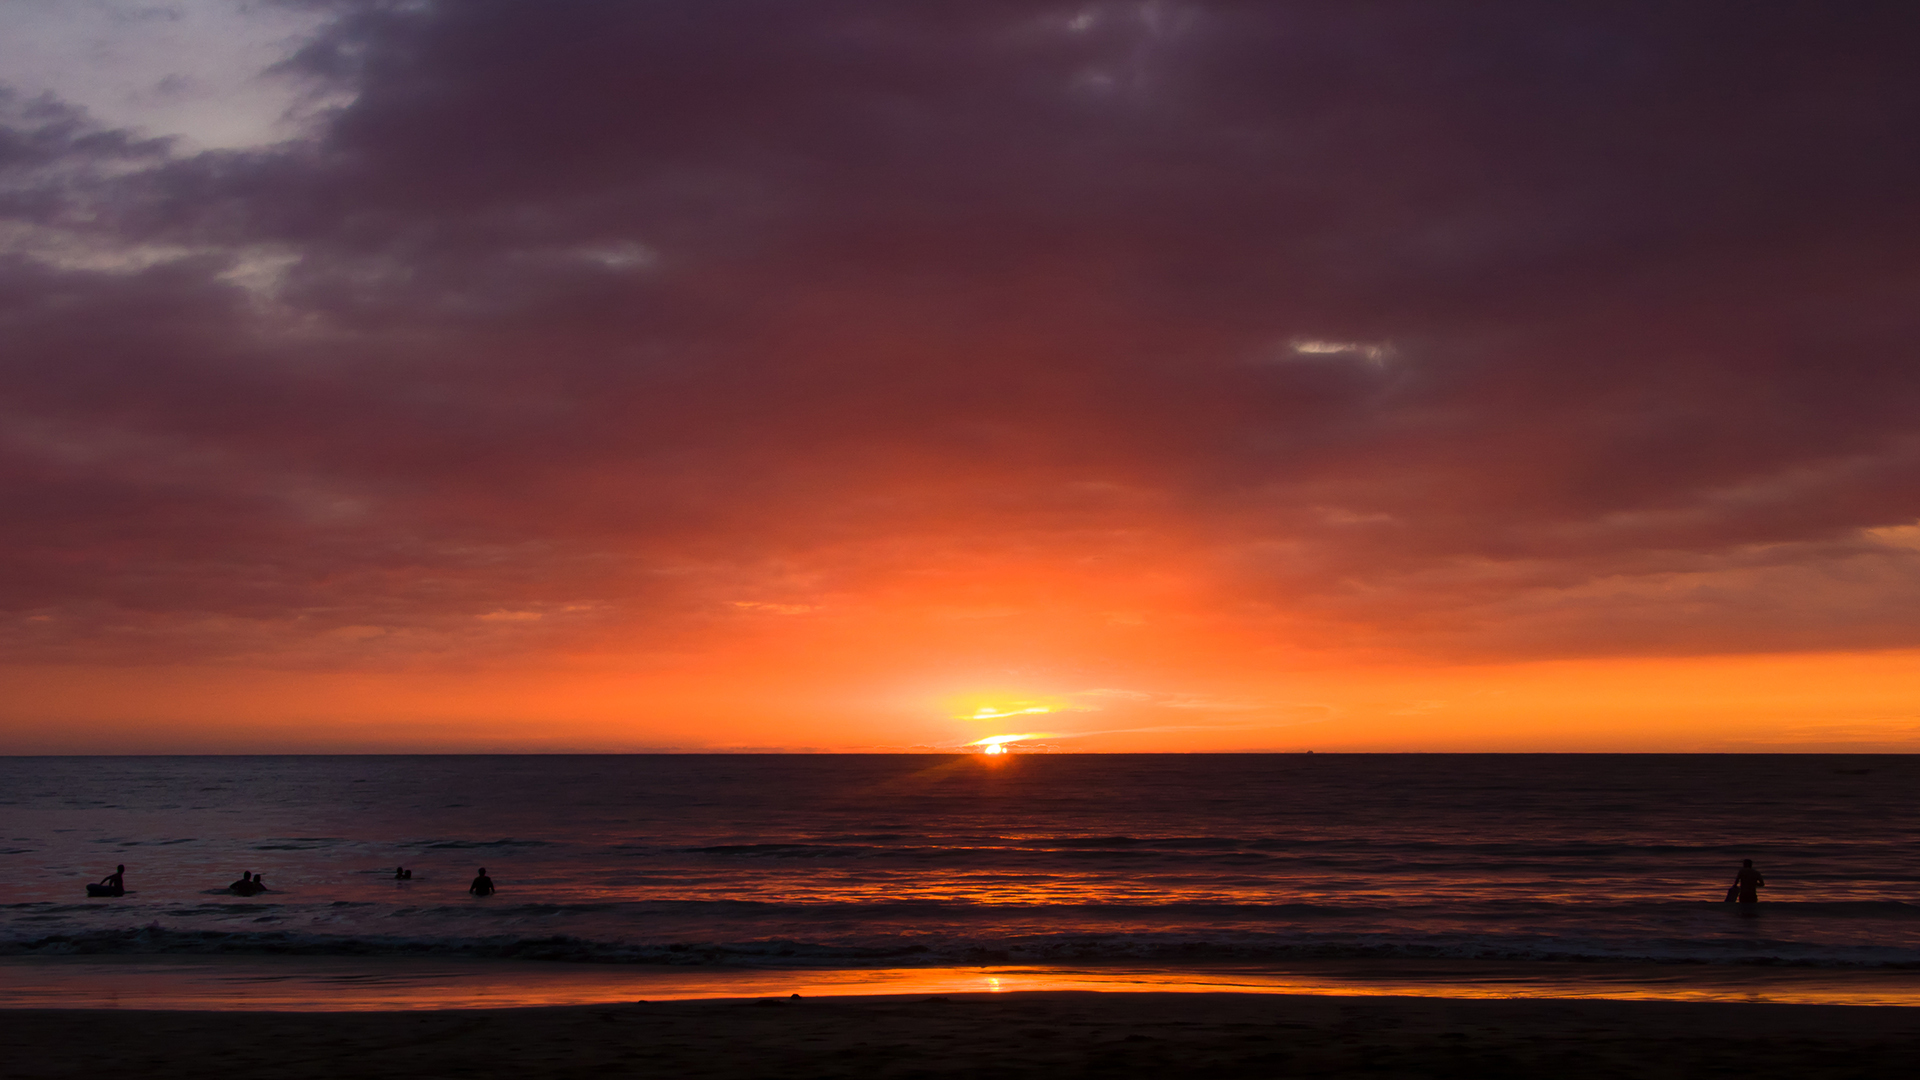 Red sunset over Riviera Nayarit beach with surfers in front